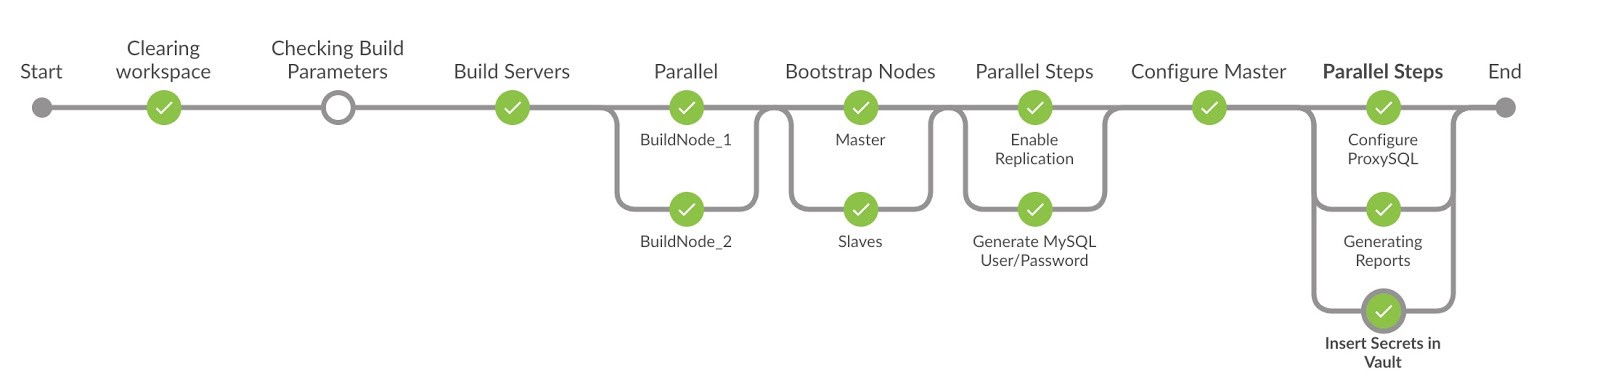 How BetterCloud Transitioned to Continuous Delivery with